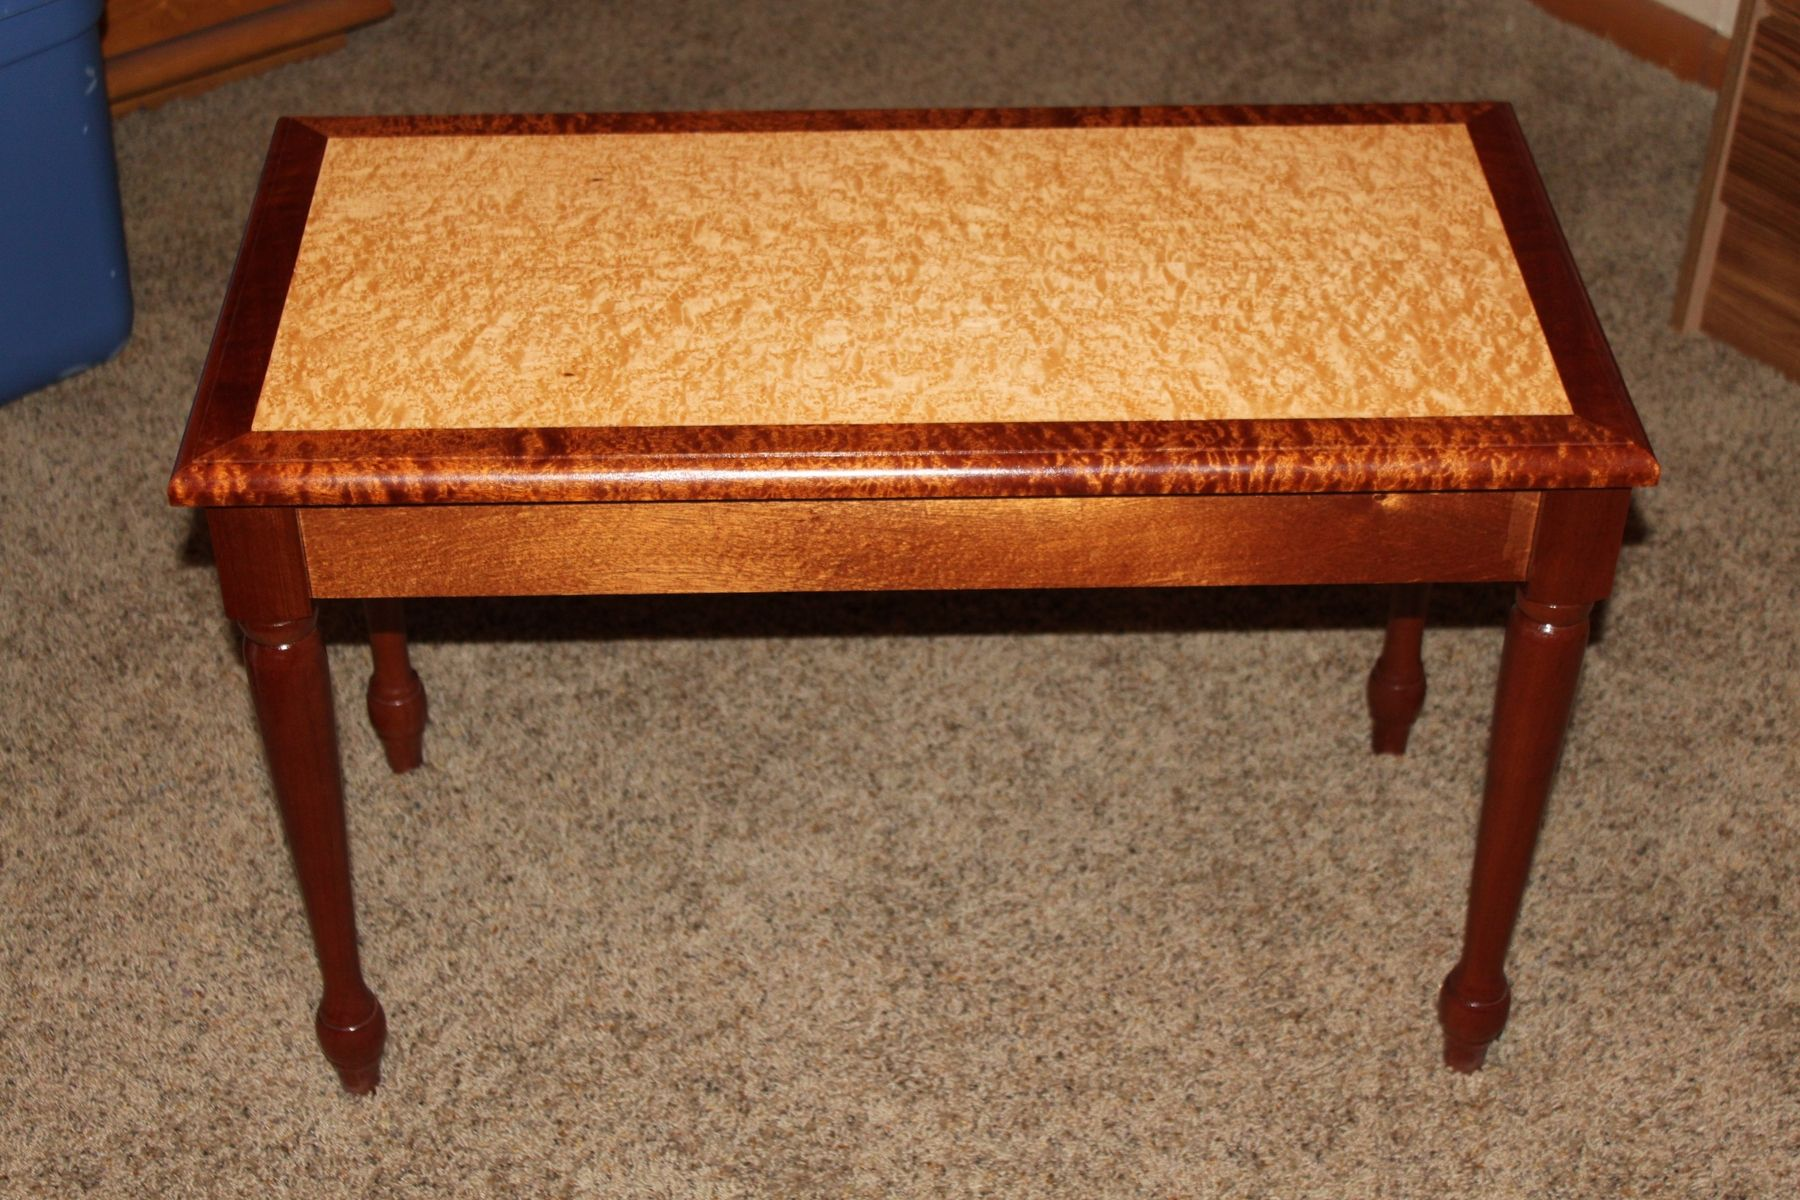 Custom Made Sapele And Birdseye Maple Piano Bench By J And J Wood Designs